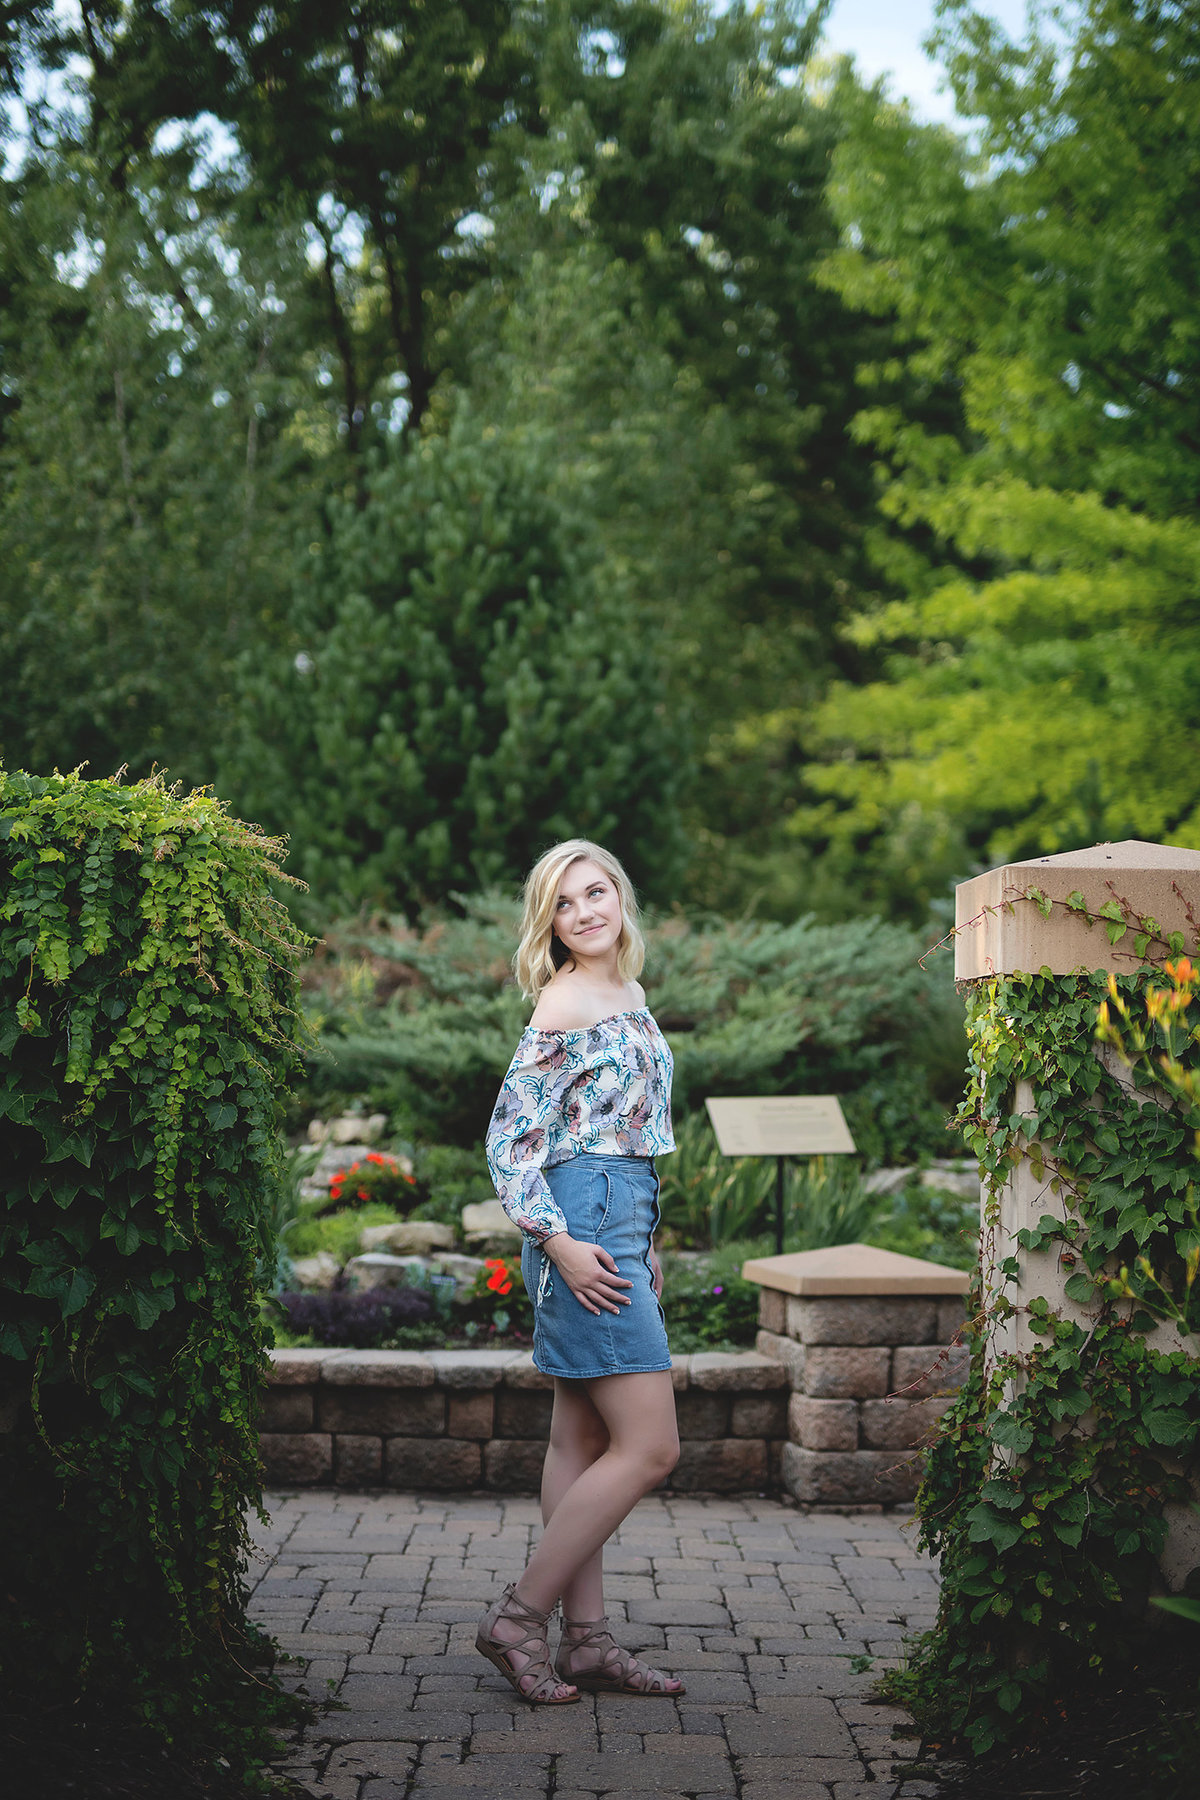 JWP_ShelbyLSenior_07.29.18__0293